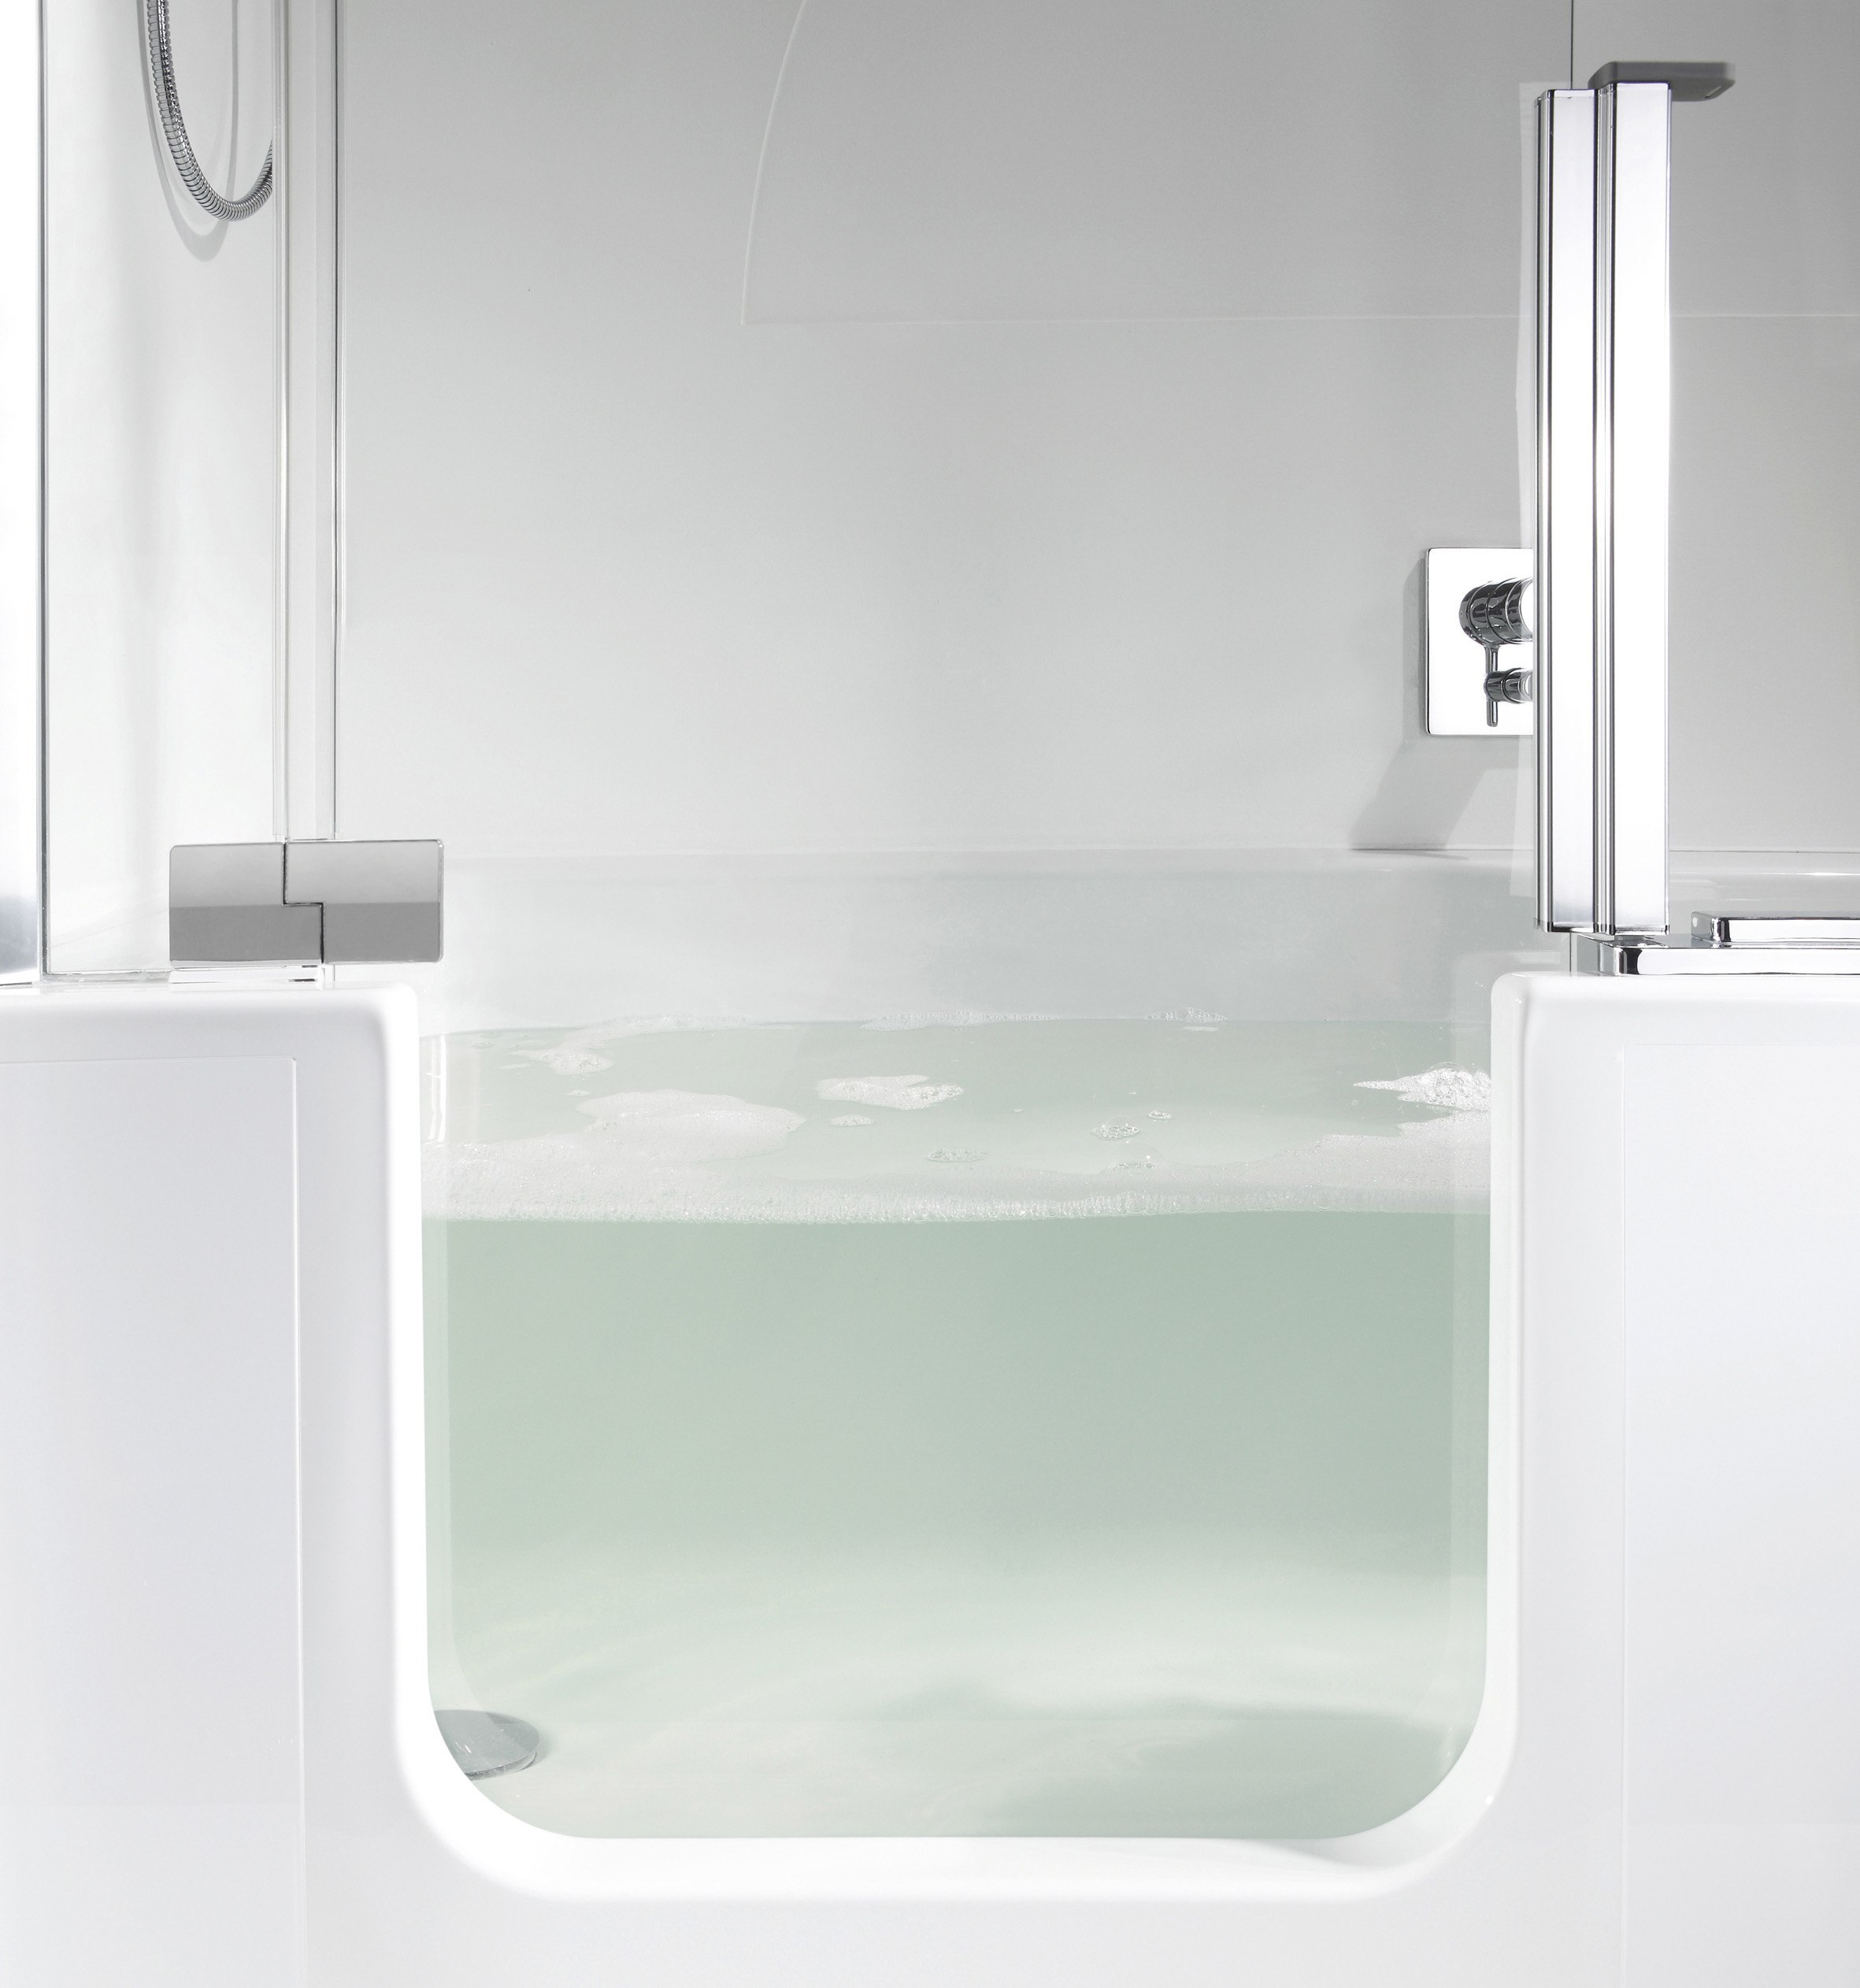 Modern Bathtub Shower the evolution of the modern bath tub and shower combo - all my